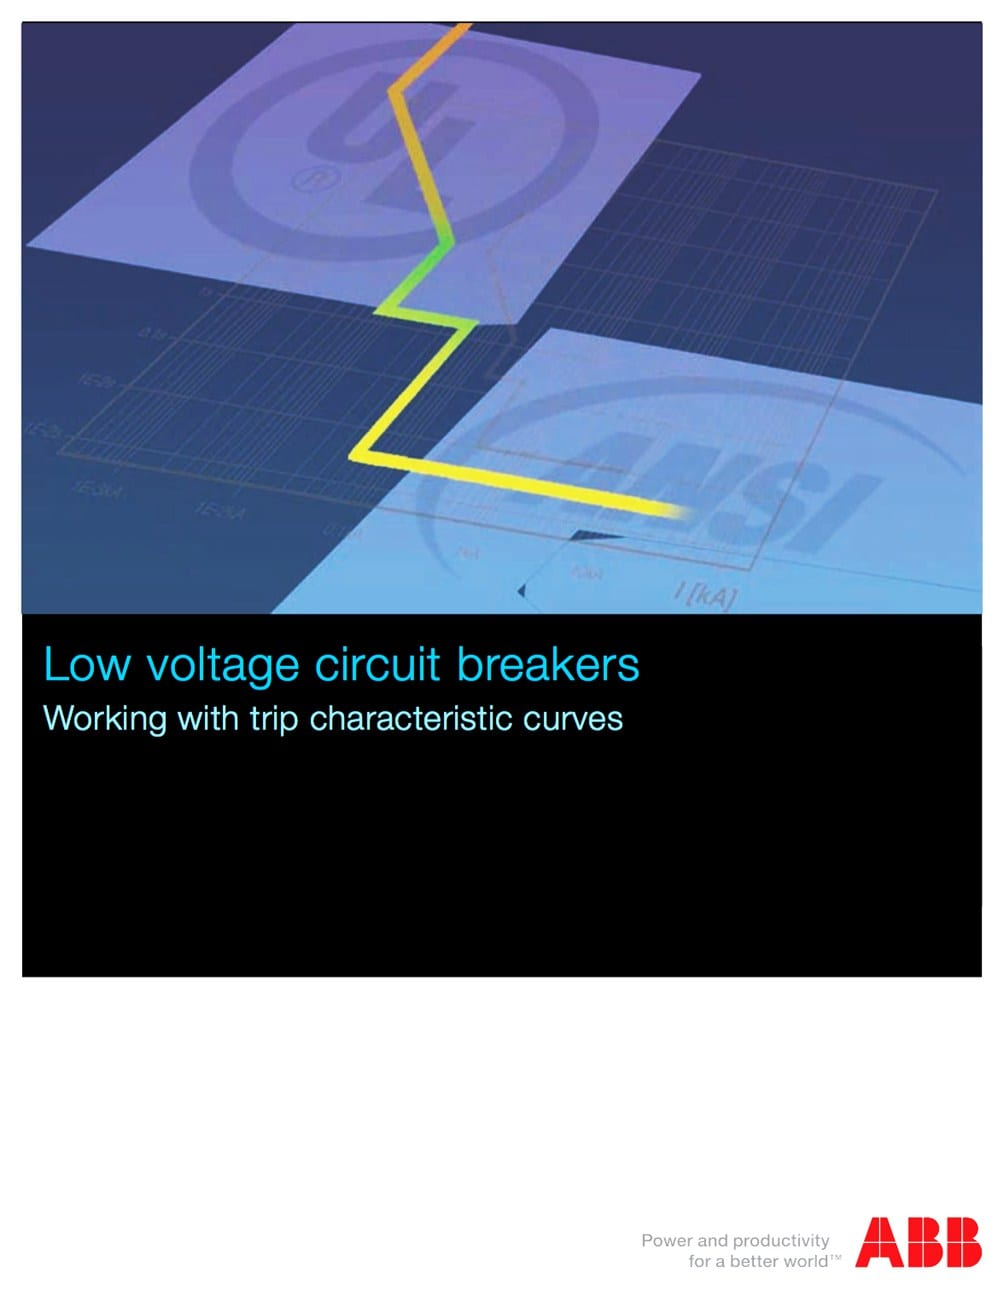 Working with trip characteristic curves of low voltage circuit breakers